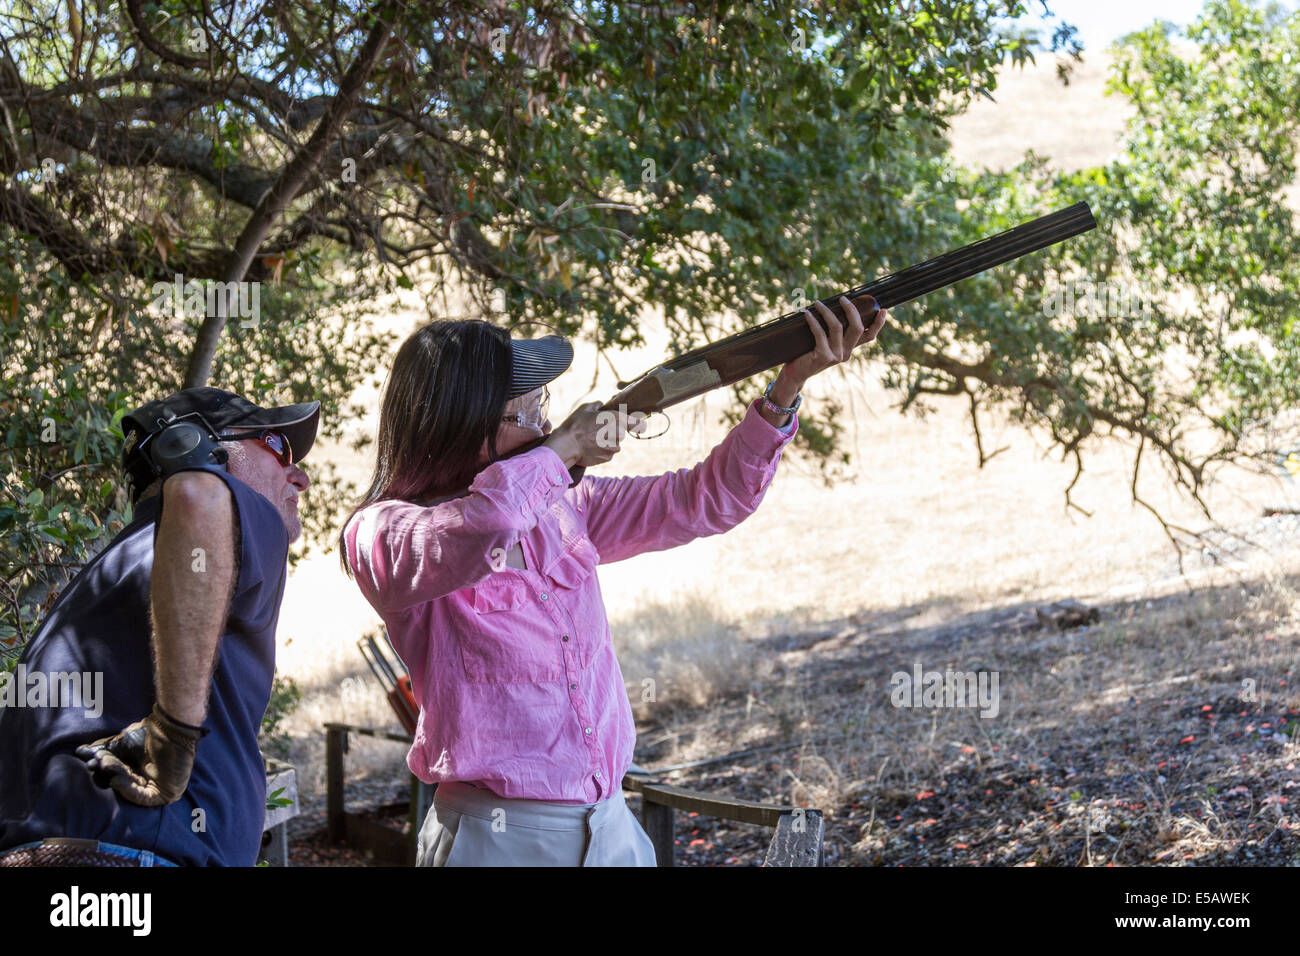 Asian woman shooting clays with a shotgun as instructor teaches her how to shoot - Stock Image